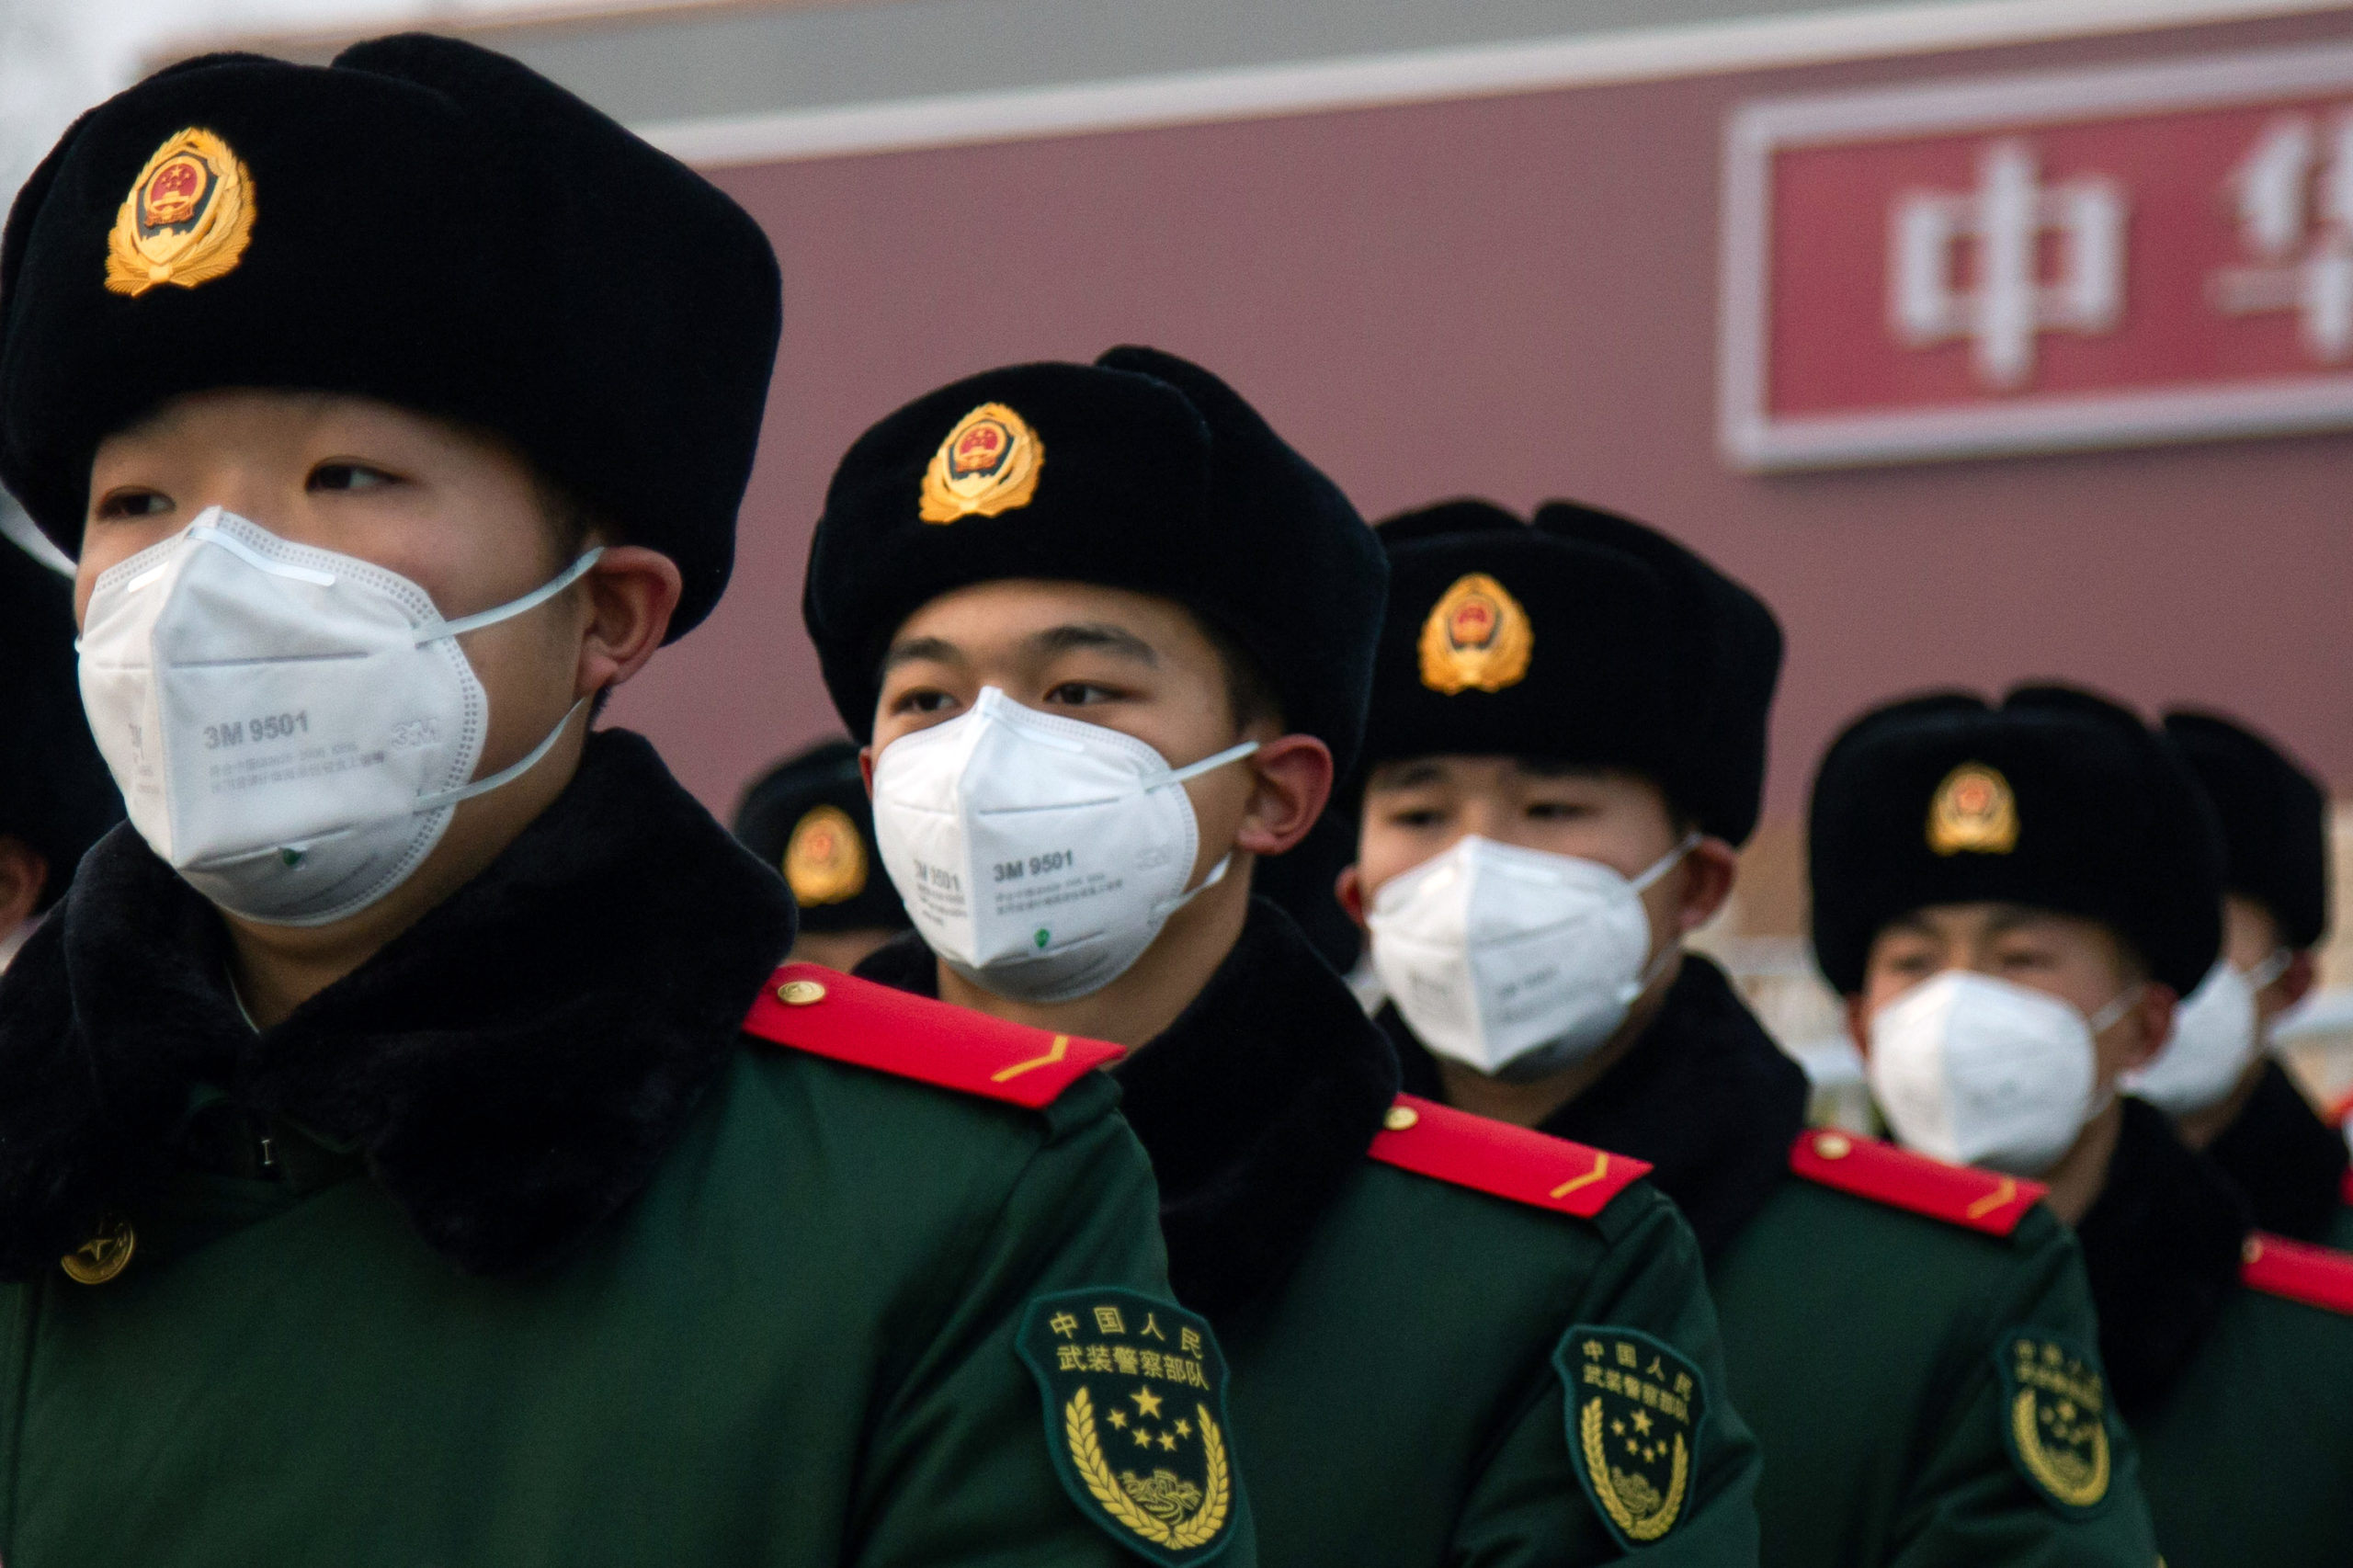 BEIJING, CHINA - JANUARY 26: Chinese police officers wearing masks stand in front of the Tiananmen Gate on January 26, 2020 in Beijing, China. The number of cases of coronavirus rose to 1,975 in mainland China on Sunday. Authorities tightened restrictions on travel and tourism this weekend after putting Wuhan, the capital of Hubei province, under quarantine on Thursday. The spread of the virus corresponds with the first days of the Spring Festival, which is one of the biggest domestic travel weeks of the year in China. Popular tourism landmarks in Beijing including the Forbidden City, Badaling Great Wall, and The Palace Museum were closed to the public starting Saturday. The Beijing Municipal Education Commission announced it will delay reopening schools from kindergarten to university. The death toll on Sunday rose to 56. The majority of fatalities are in Wuhan where the first cases of the virus were reported last month (Photo by Betsy Joles/Getty Images)